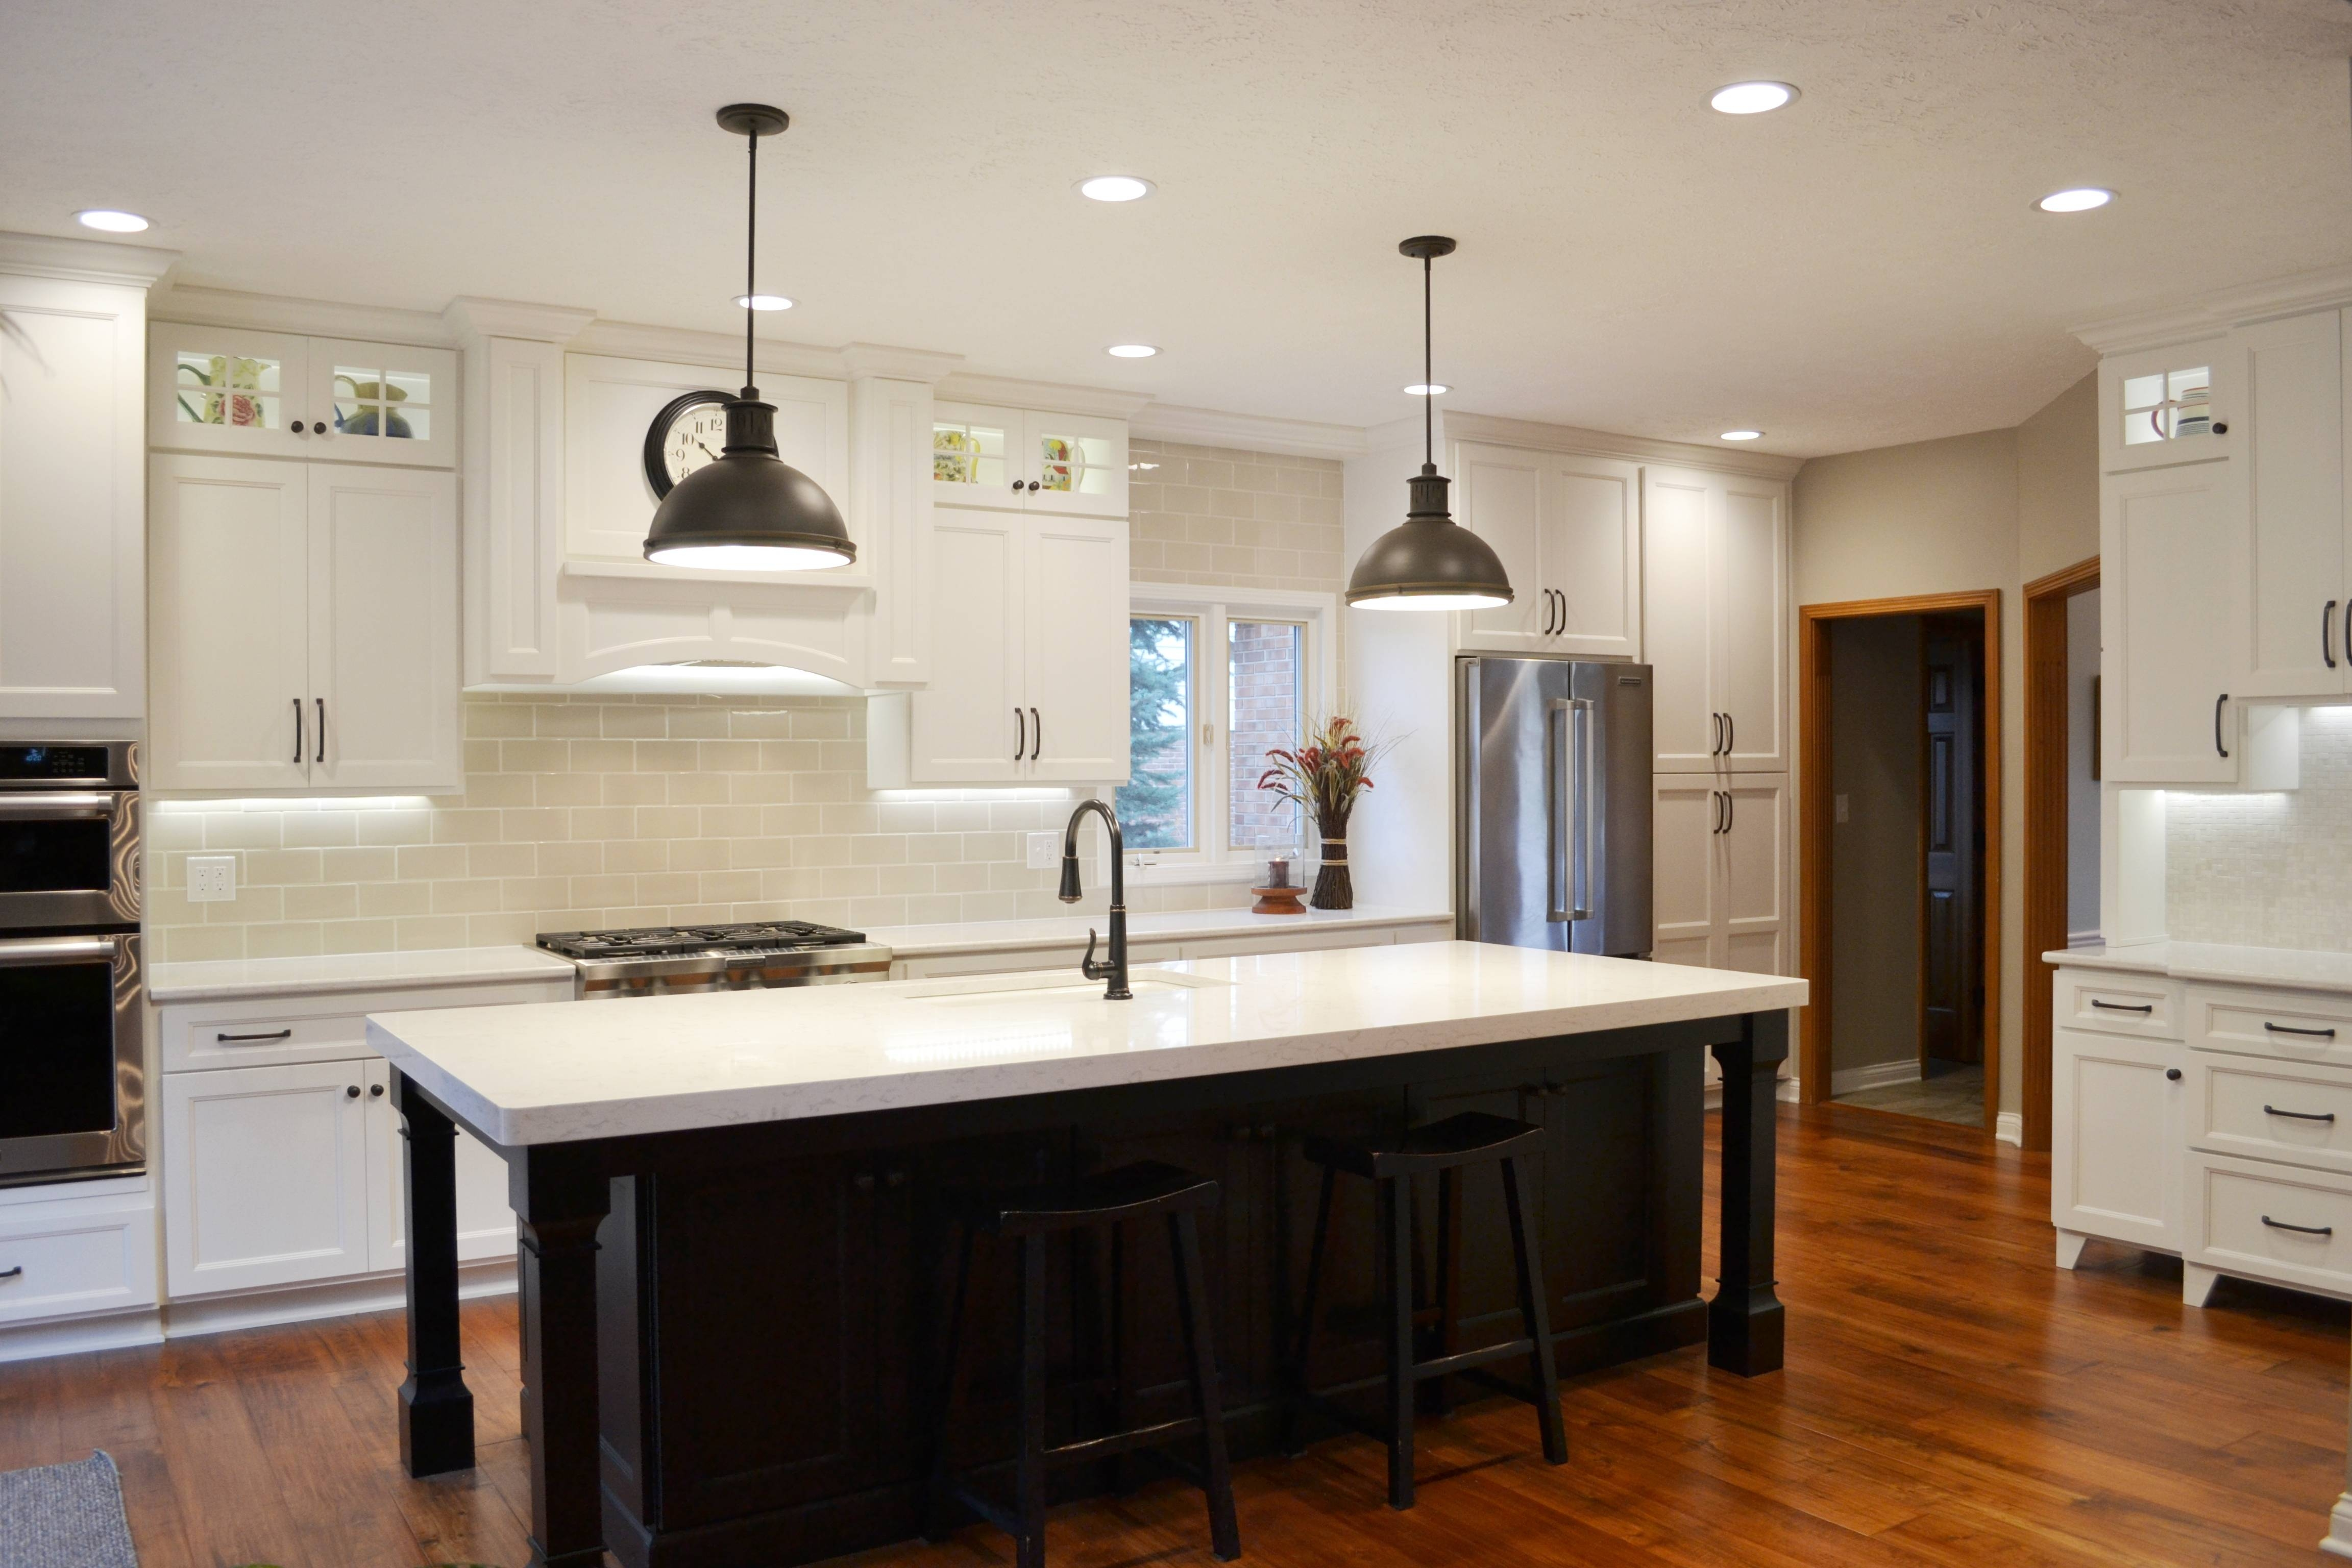 Beautiful Pendant Light Ideas For Kitchen | Baytownkitchen Intended For Pendant Lights In Kitchen (View 9 of 15)